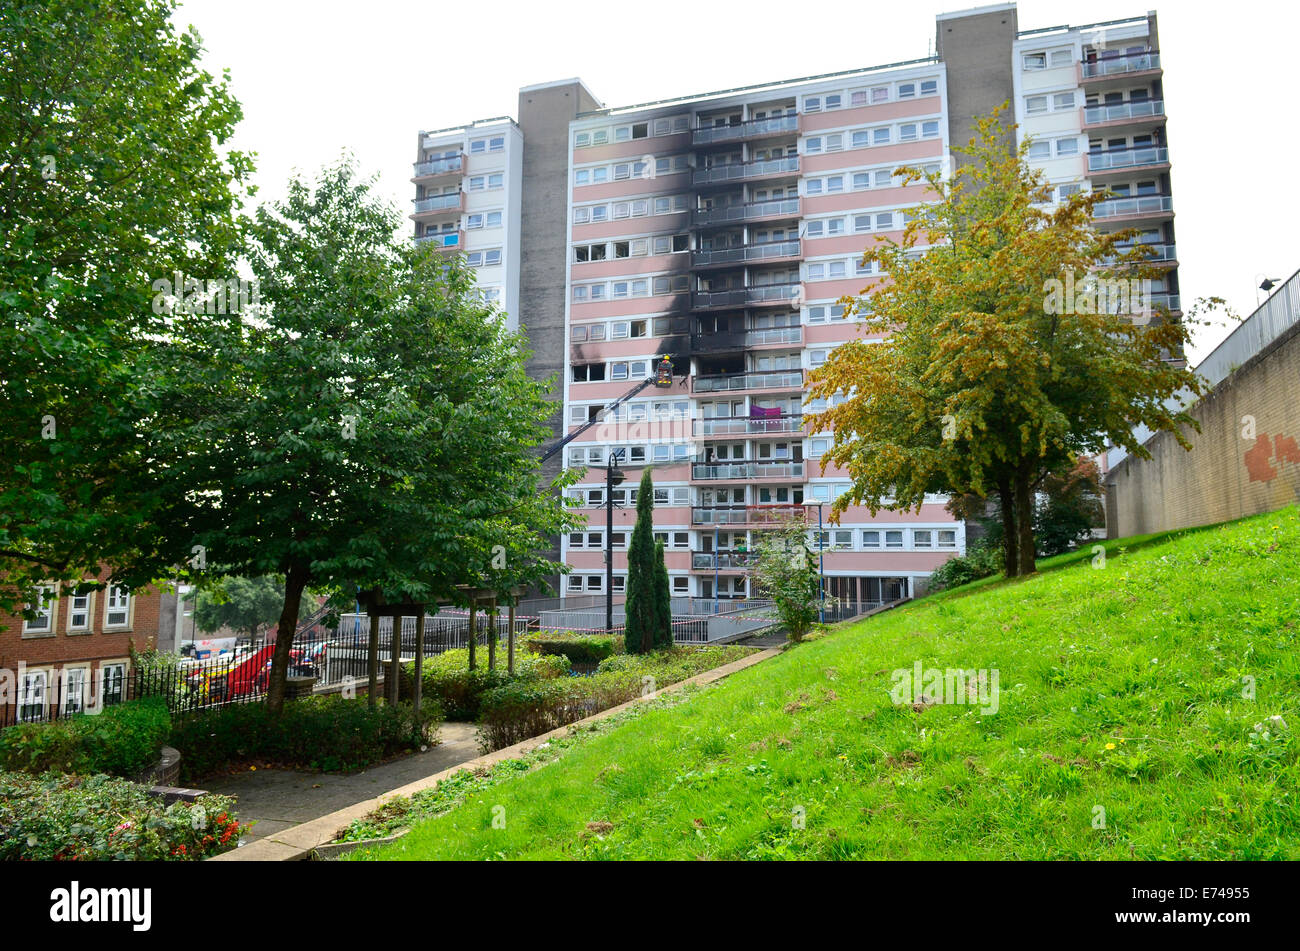 Bristol, UK. 6th September, 2014. One person died in a major fire in a Block of Flats in Carolina House in Dove - Stock Image